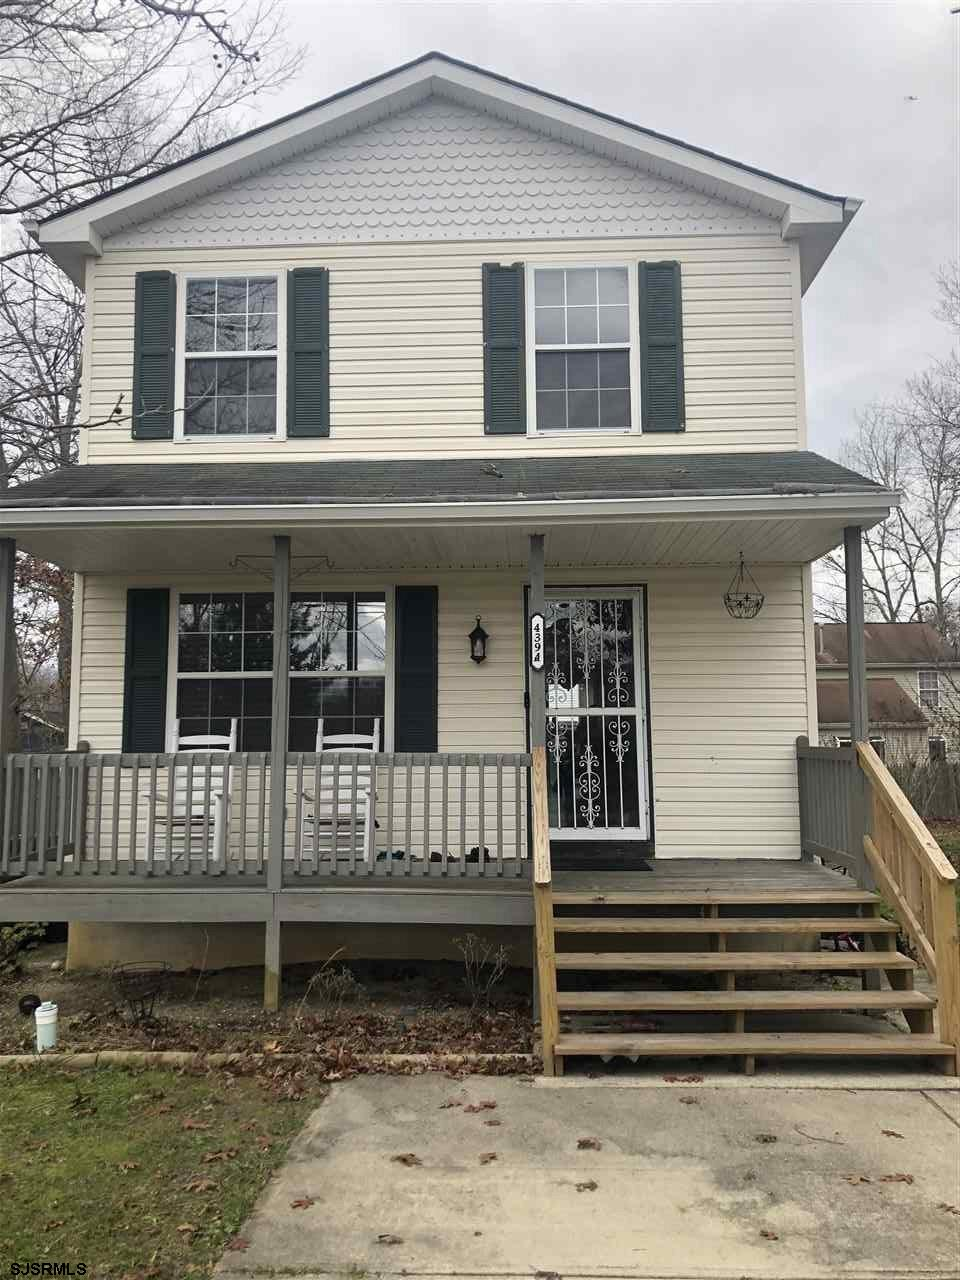 Look No Further: This 3 bedroom 2 1/2 Bath, 2 story home is perfect for any size family.  Built in 1